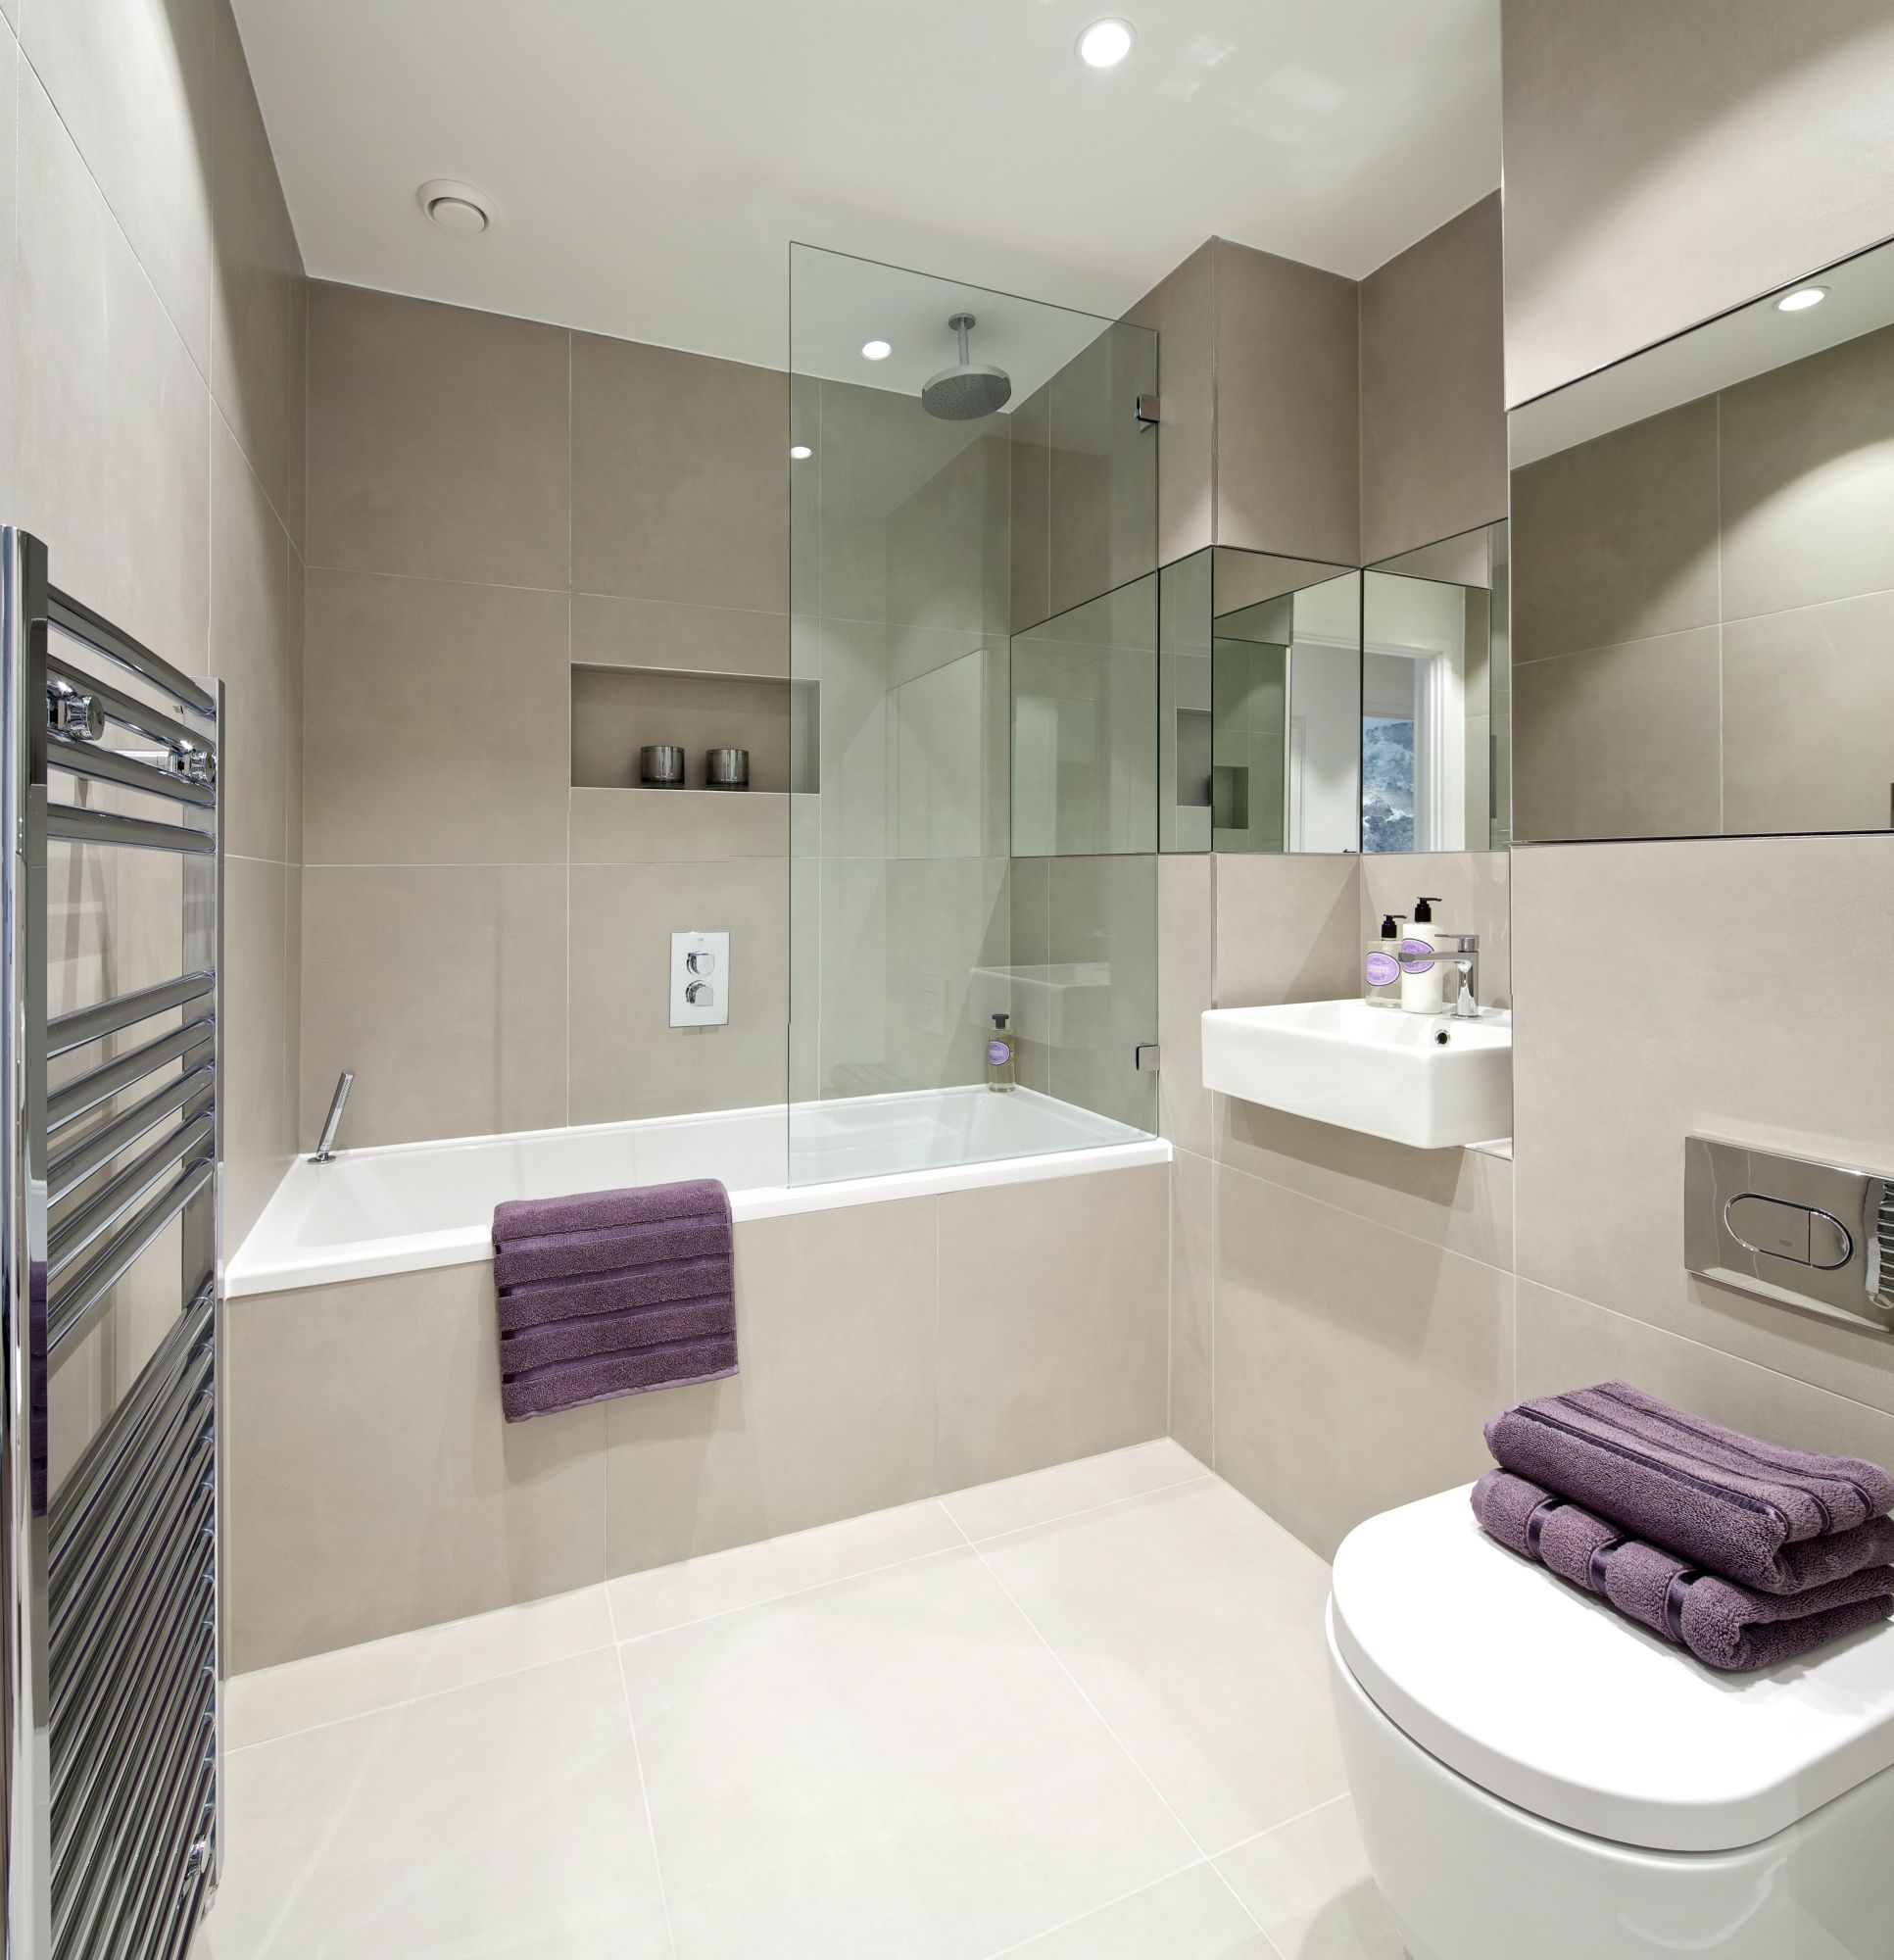 Stunning home interiors bathroom another stunning show for Bathroom design pinterest